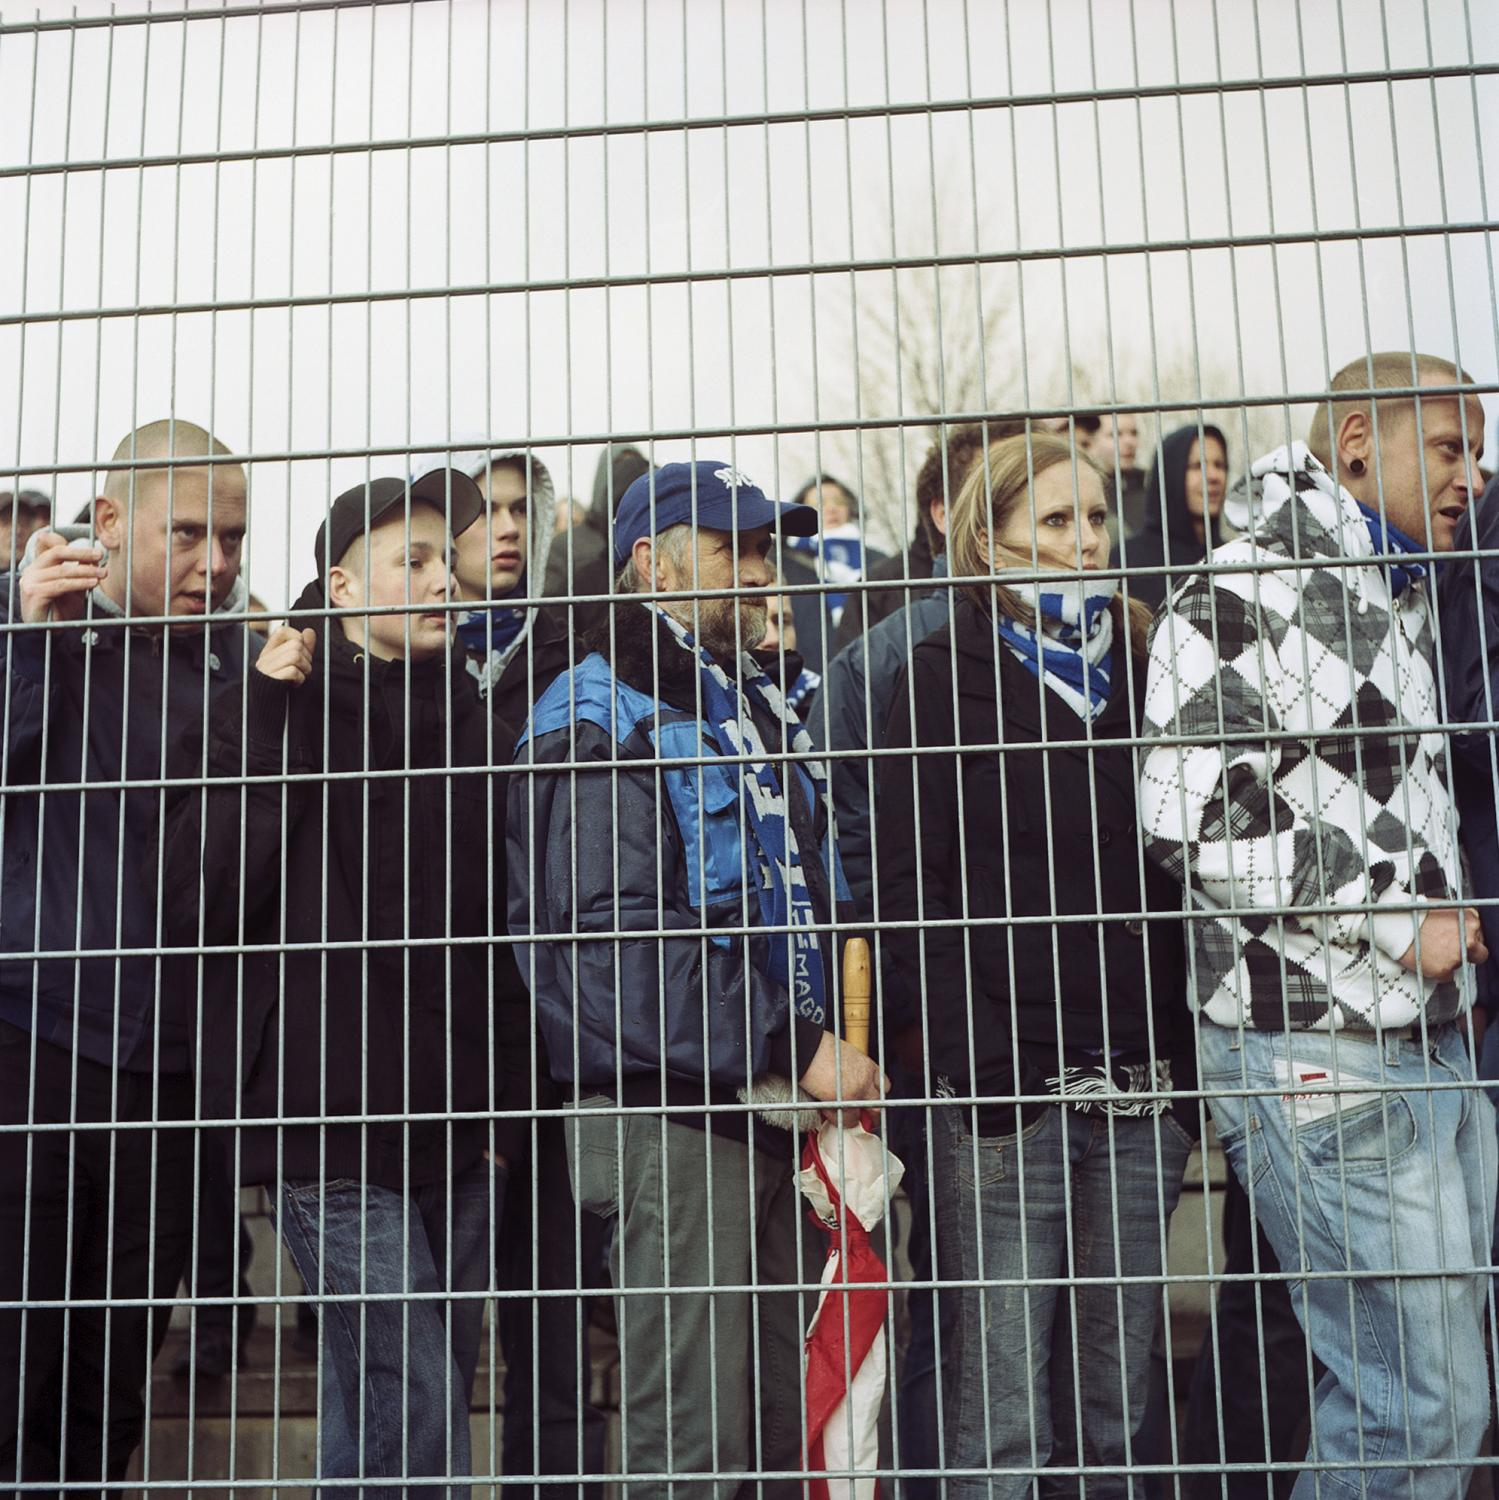 Supporters are seen with sad faces behind a gate in Halberstadt, after the 1. FC Magdeburg did not get through the semi-final against the fifth league club FC Halberstadt. This crushed the hope of winning the Regional Cup, after the the aim of getting ahead in the fourth league was already deceived, leaving the supporters deeply deceived by the performance of the team in the 2009/2010 season.